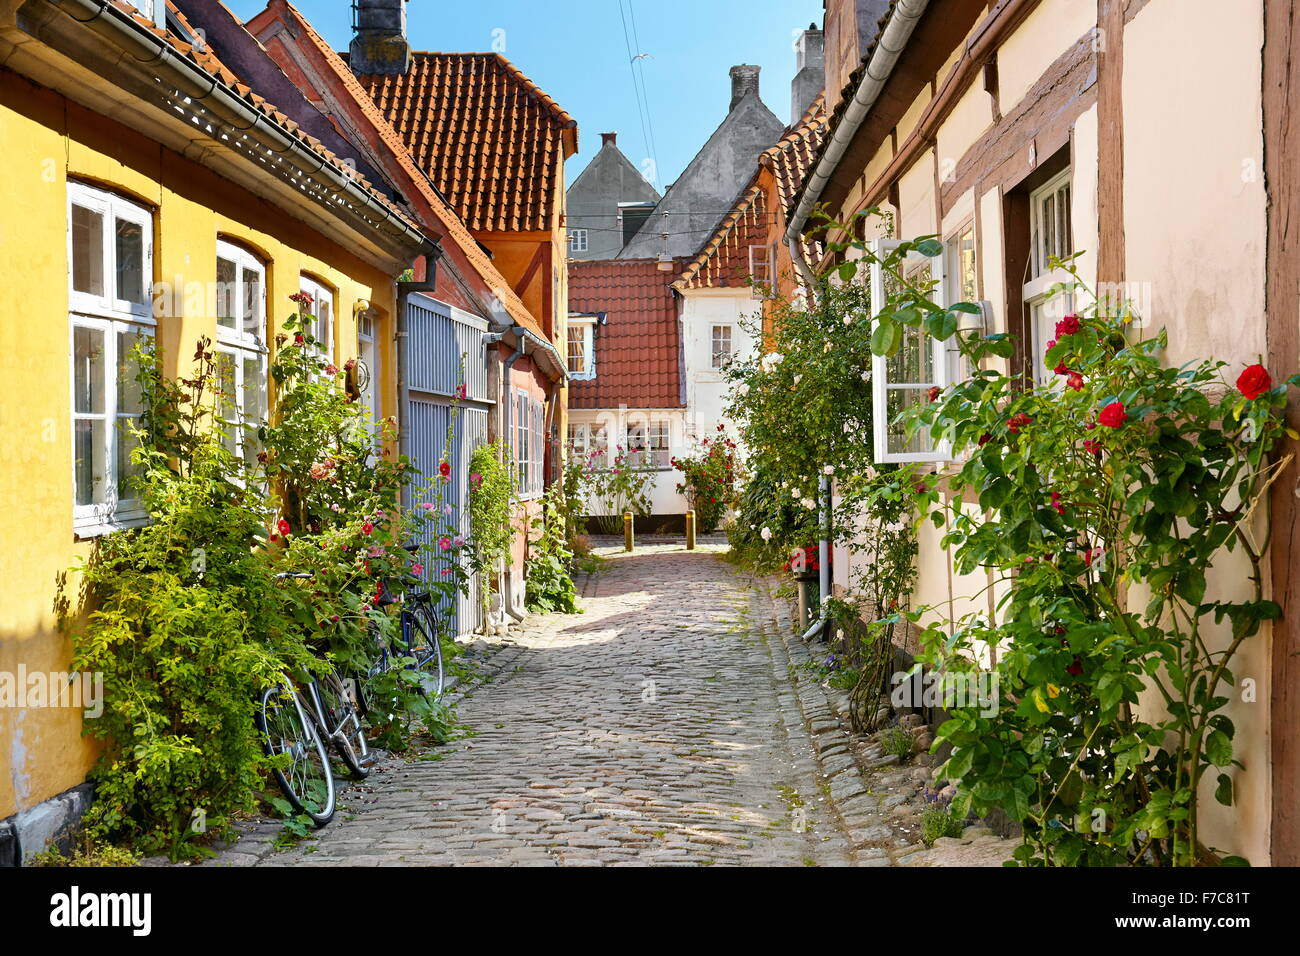 Old town in Helsingor, Denmark - Stock Image